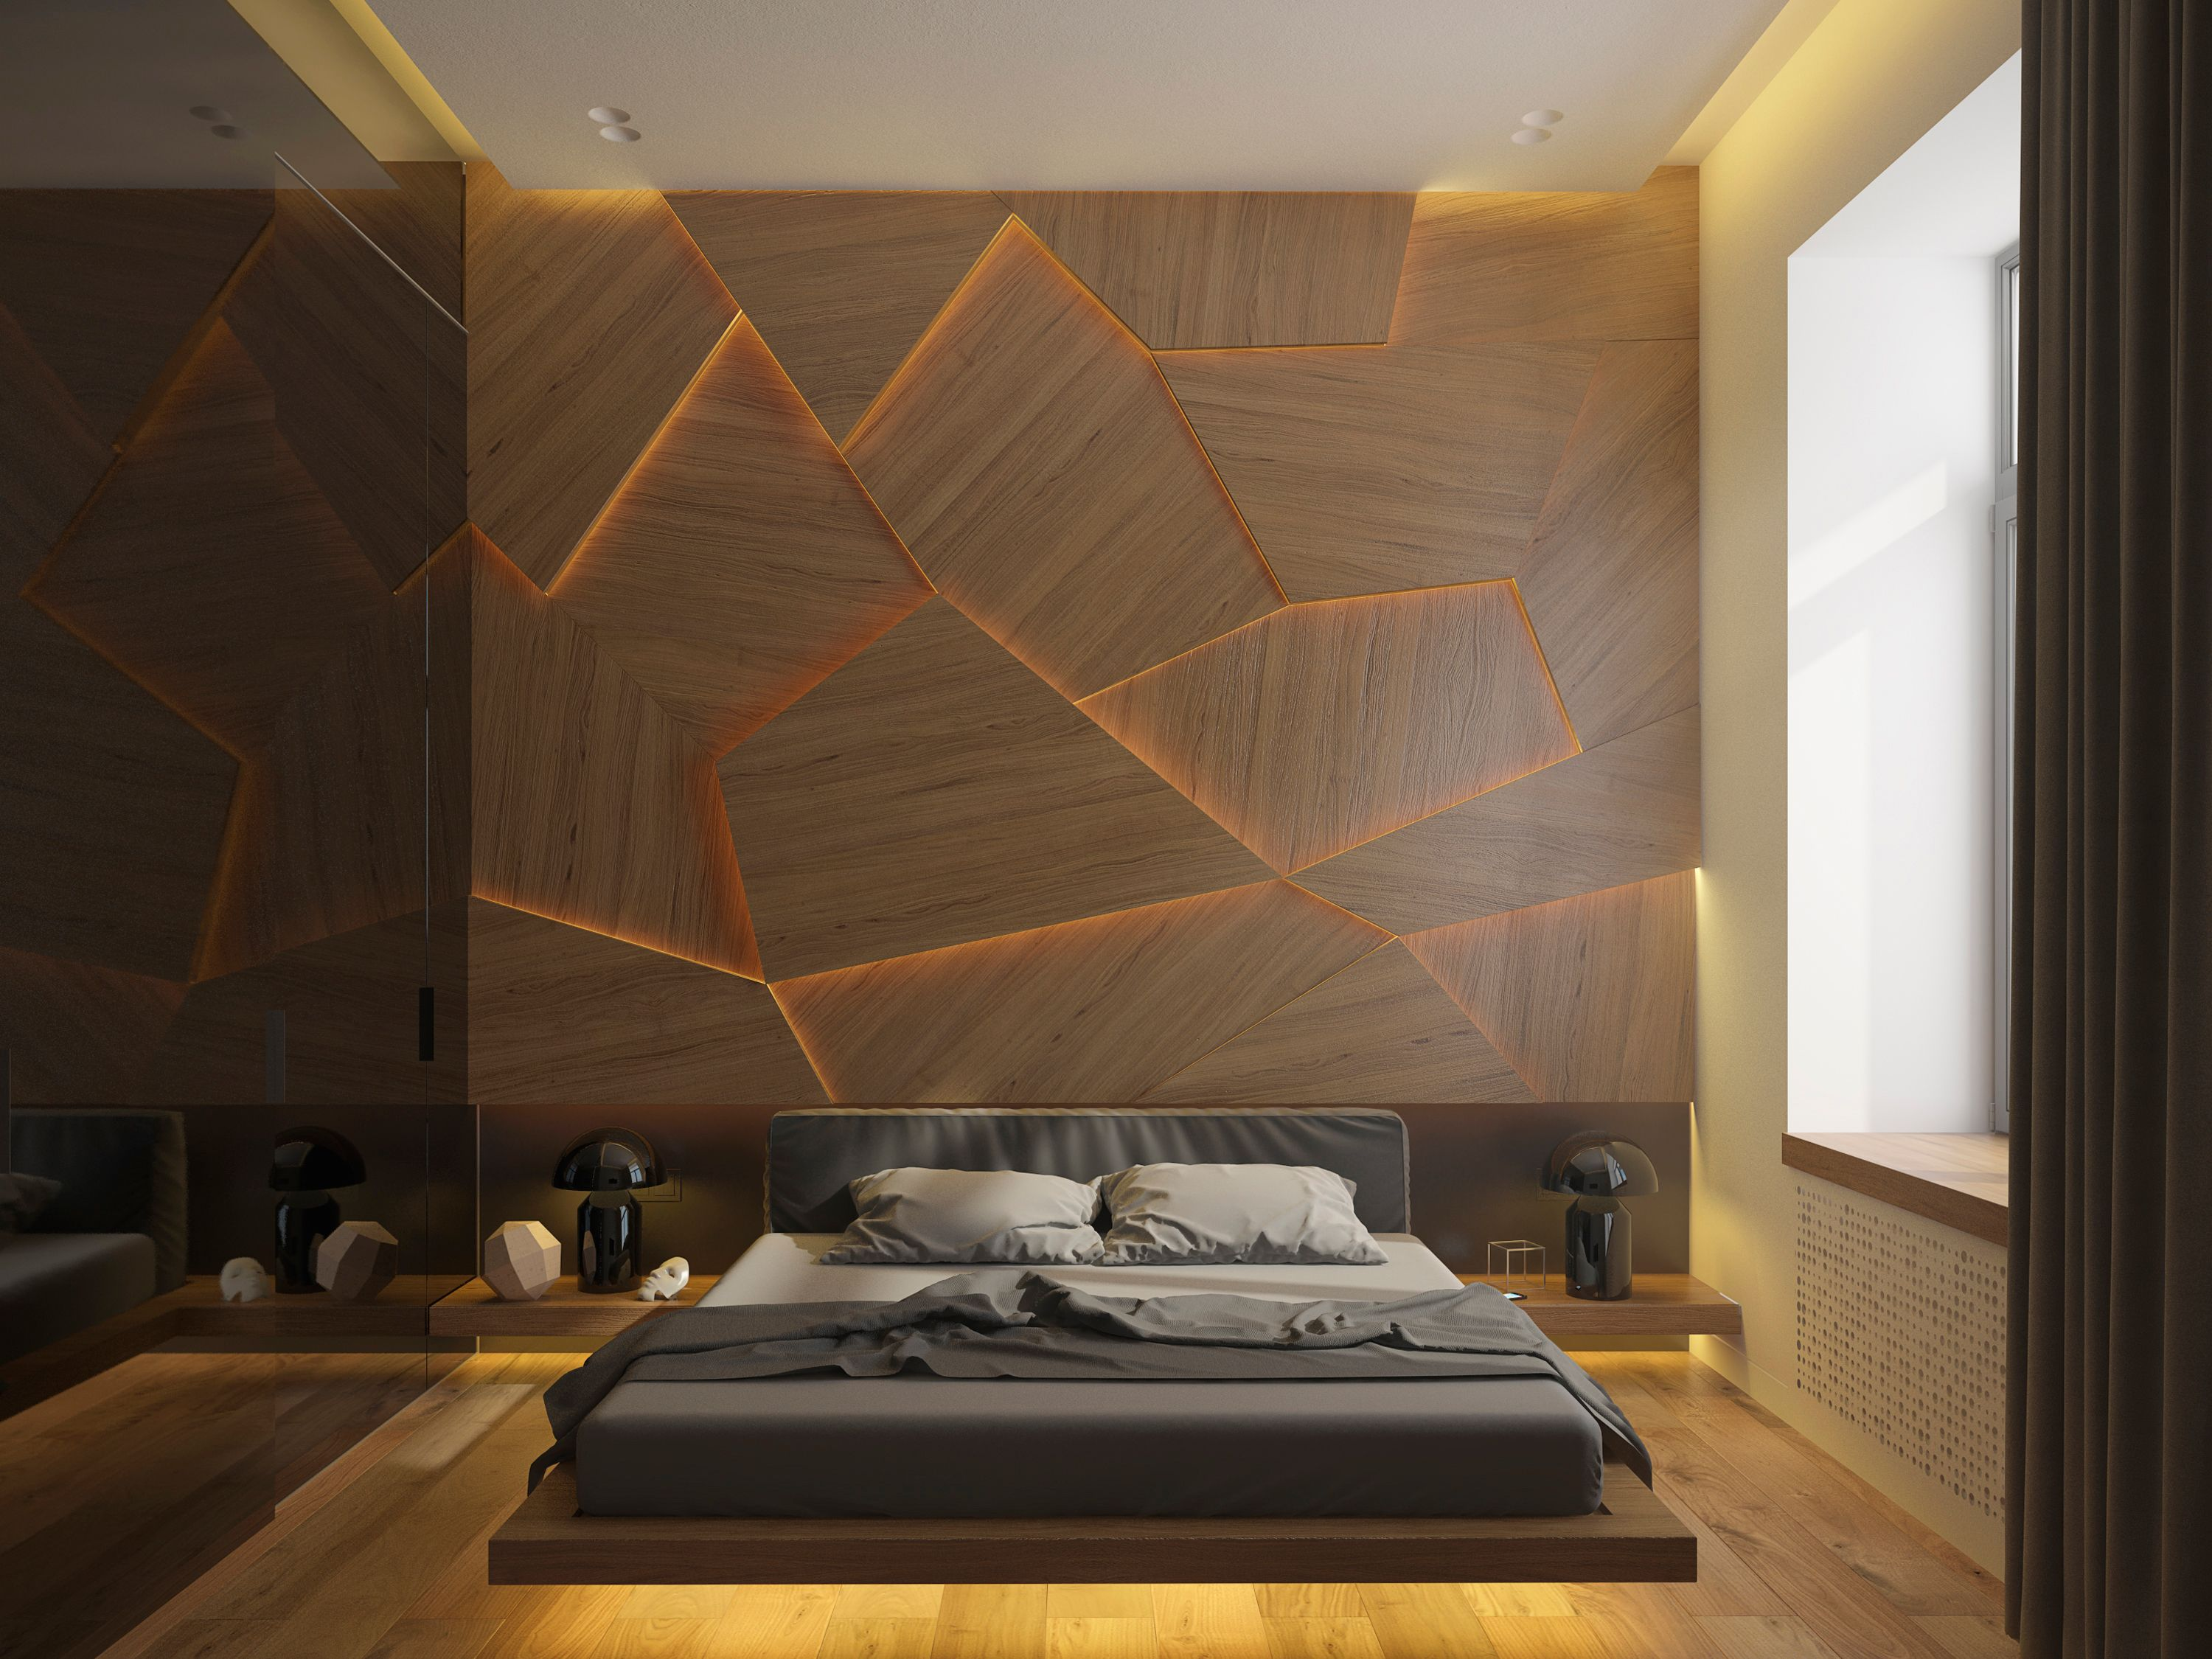 Amazing Interior Inspiration This Beautiful Wall Design Looks So Amazing In This Master Bedroom